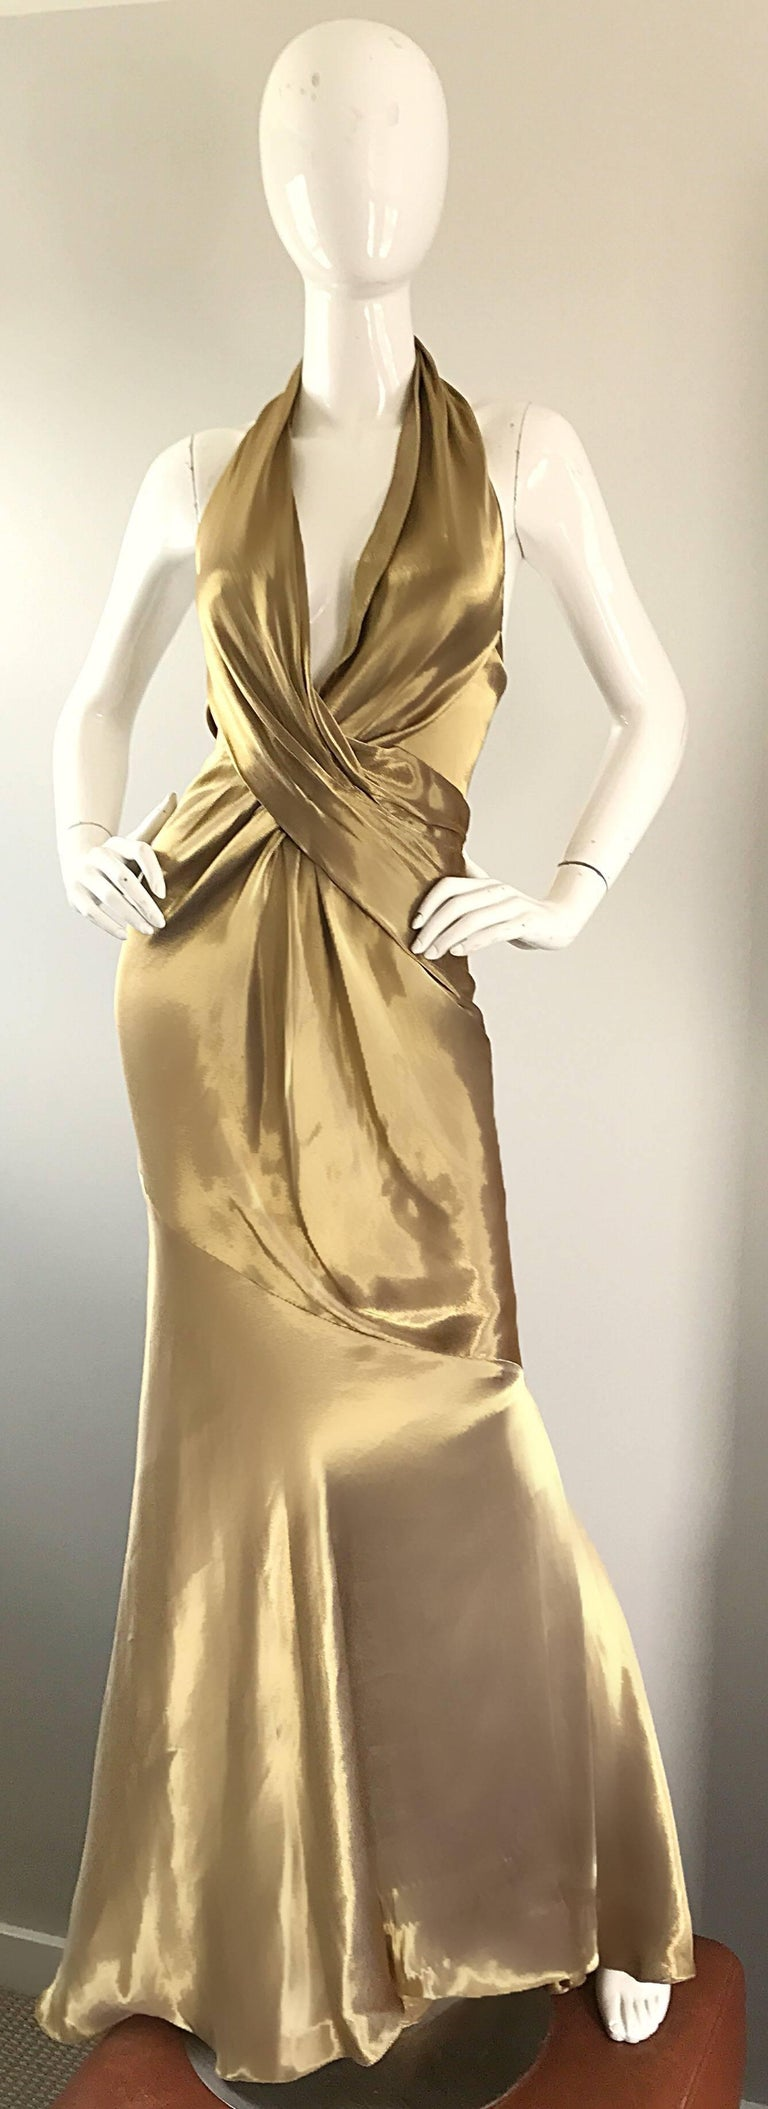 Stunning and sexy 1990s DONNA KARAN black label 'liquid gold' silk halter evening dress. Plunging neckline with an additional built in halter support. Hidden zipper up the side with multiple hook-and-eye closures. Flattering pleated bodice, with a